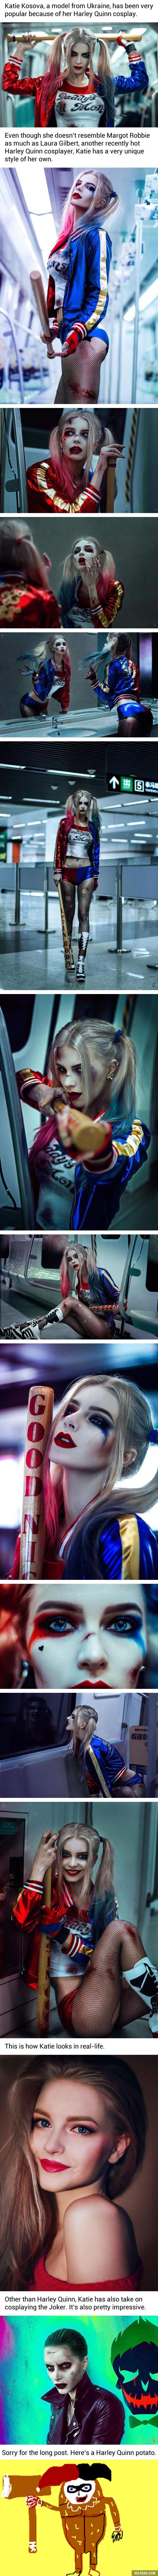 Meet The Harley Quinn Cosplayer From Ukraine The Internet Is Talking About